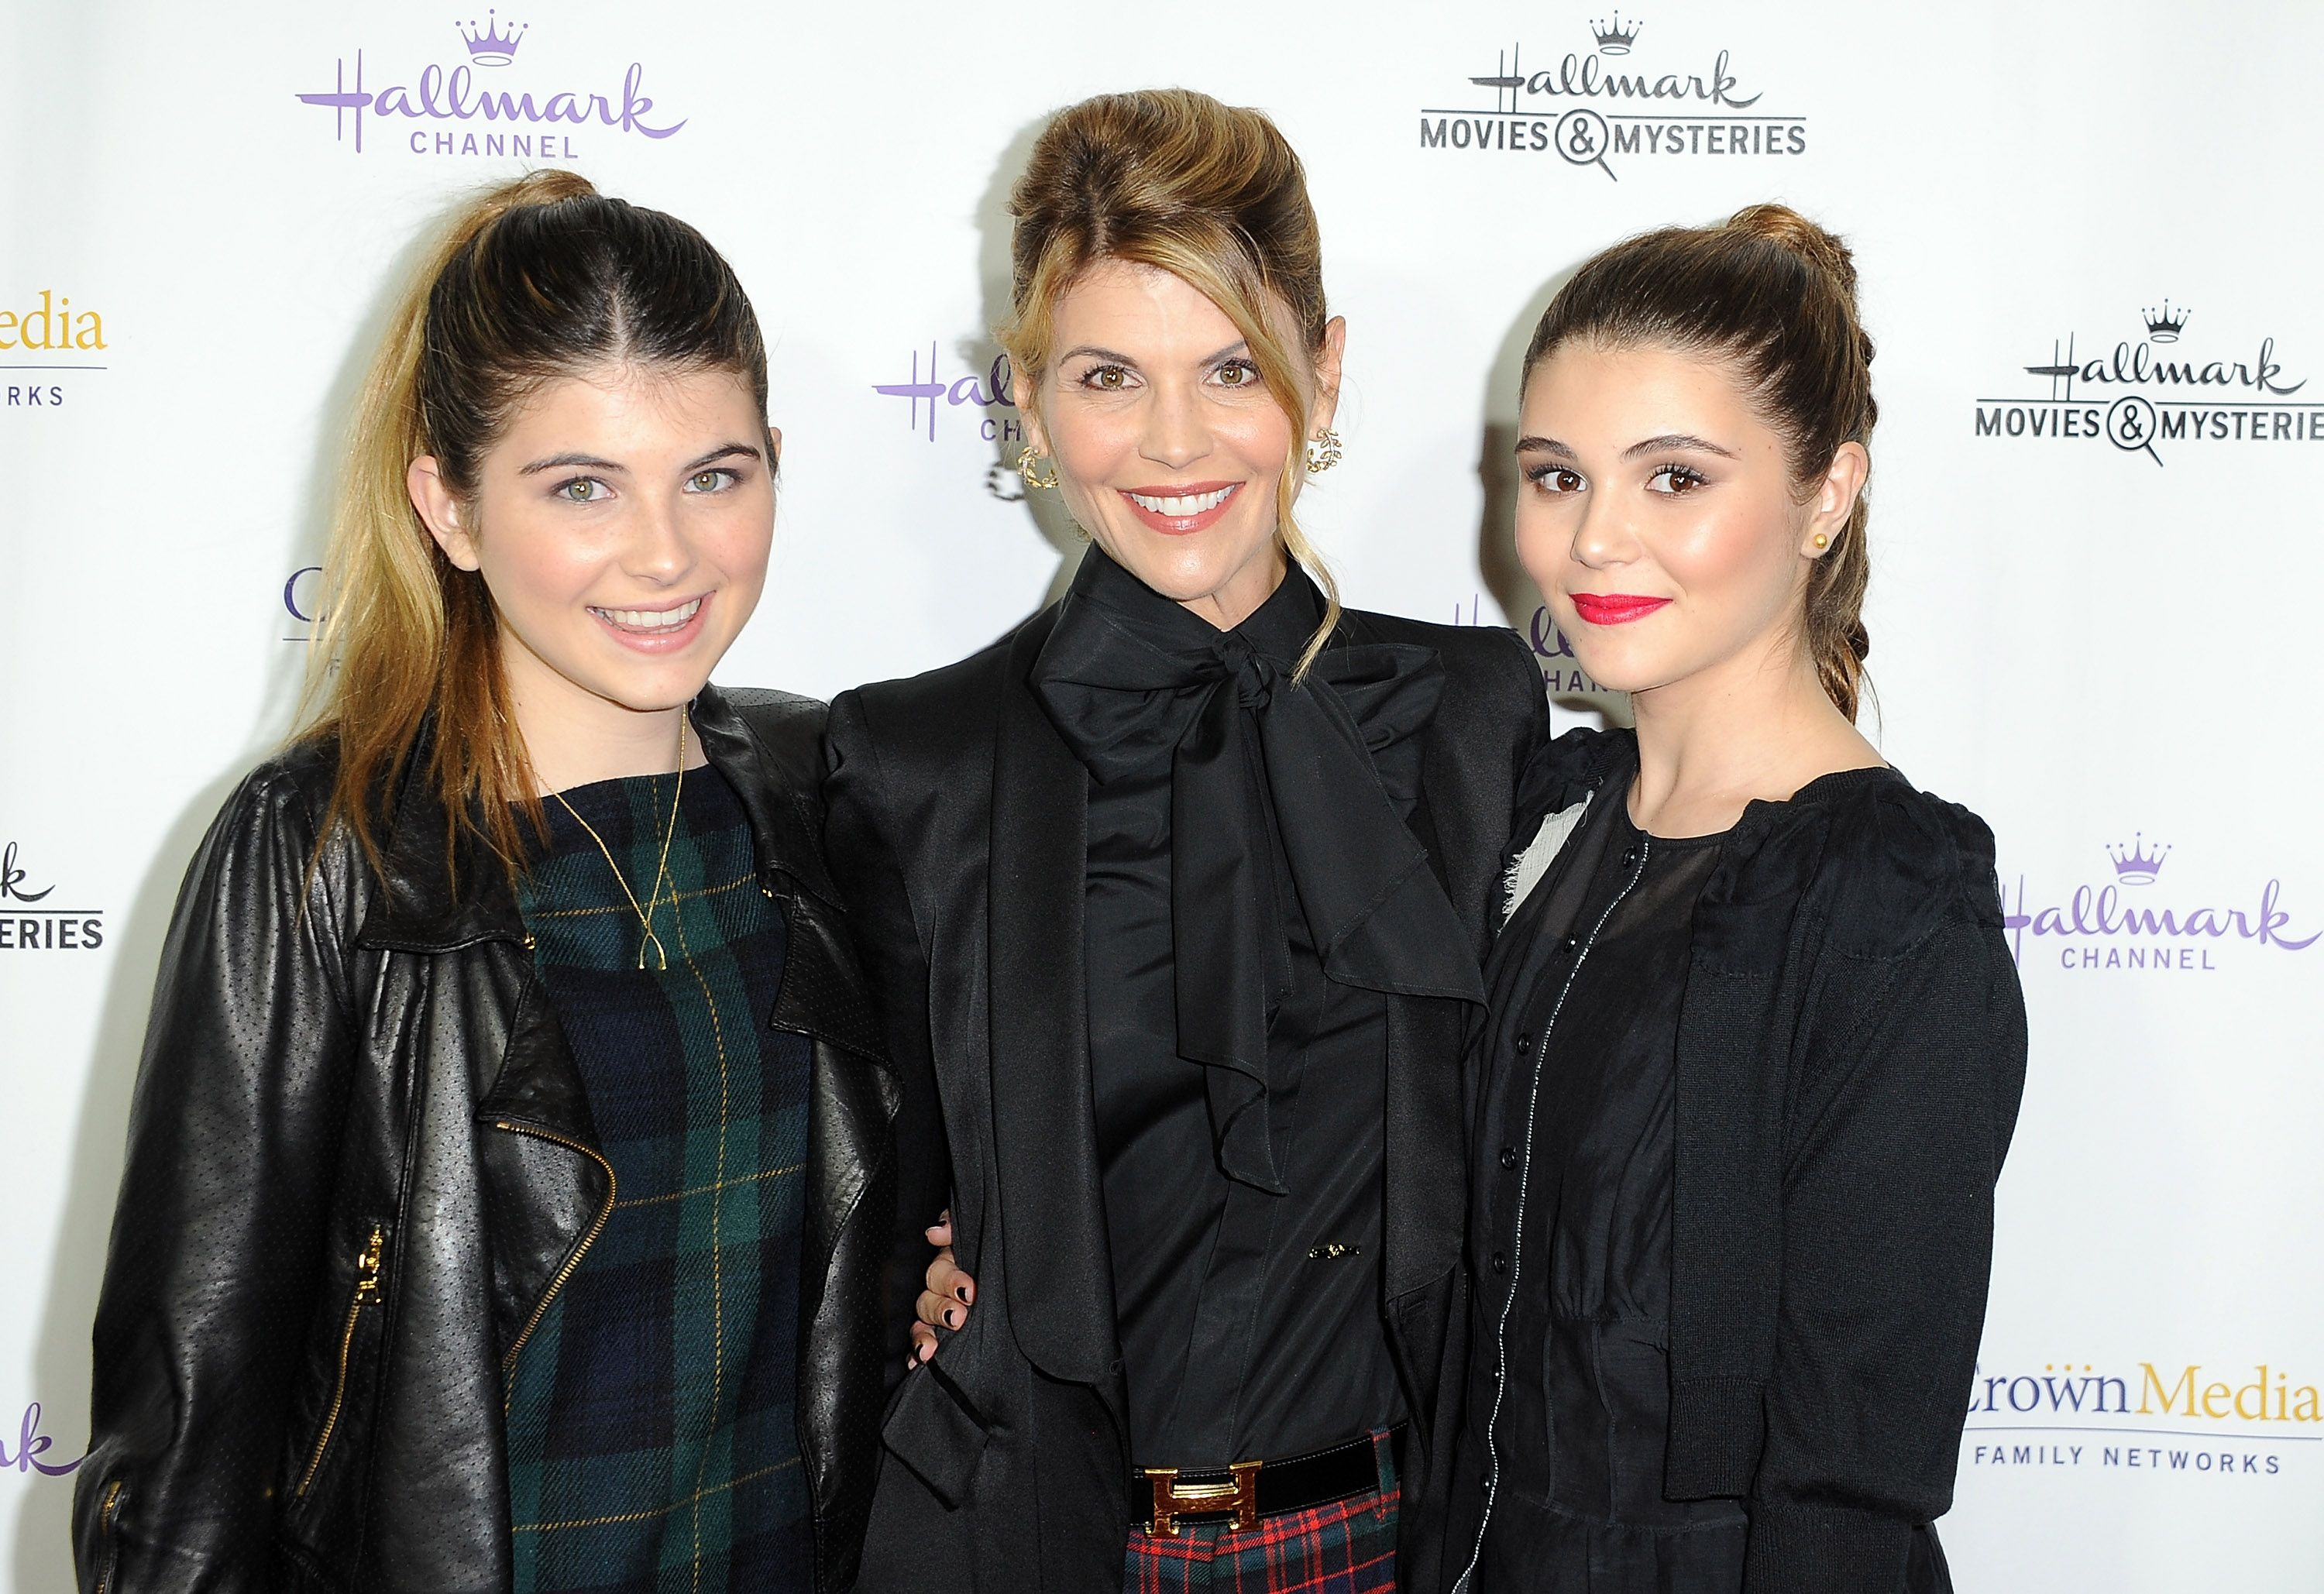 """Lori Loughlin and her daughters Isabella and Olivia Jade Giannulli at the premiere of """"Northpole"""" in 2014 in Los Angeles   Source: Getty Images"""